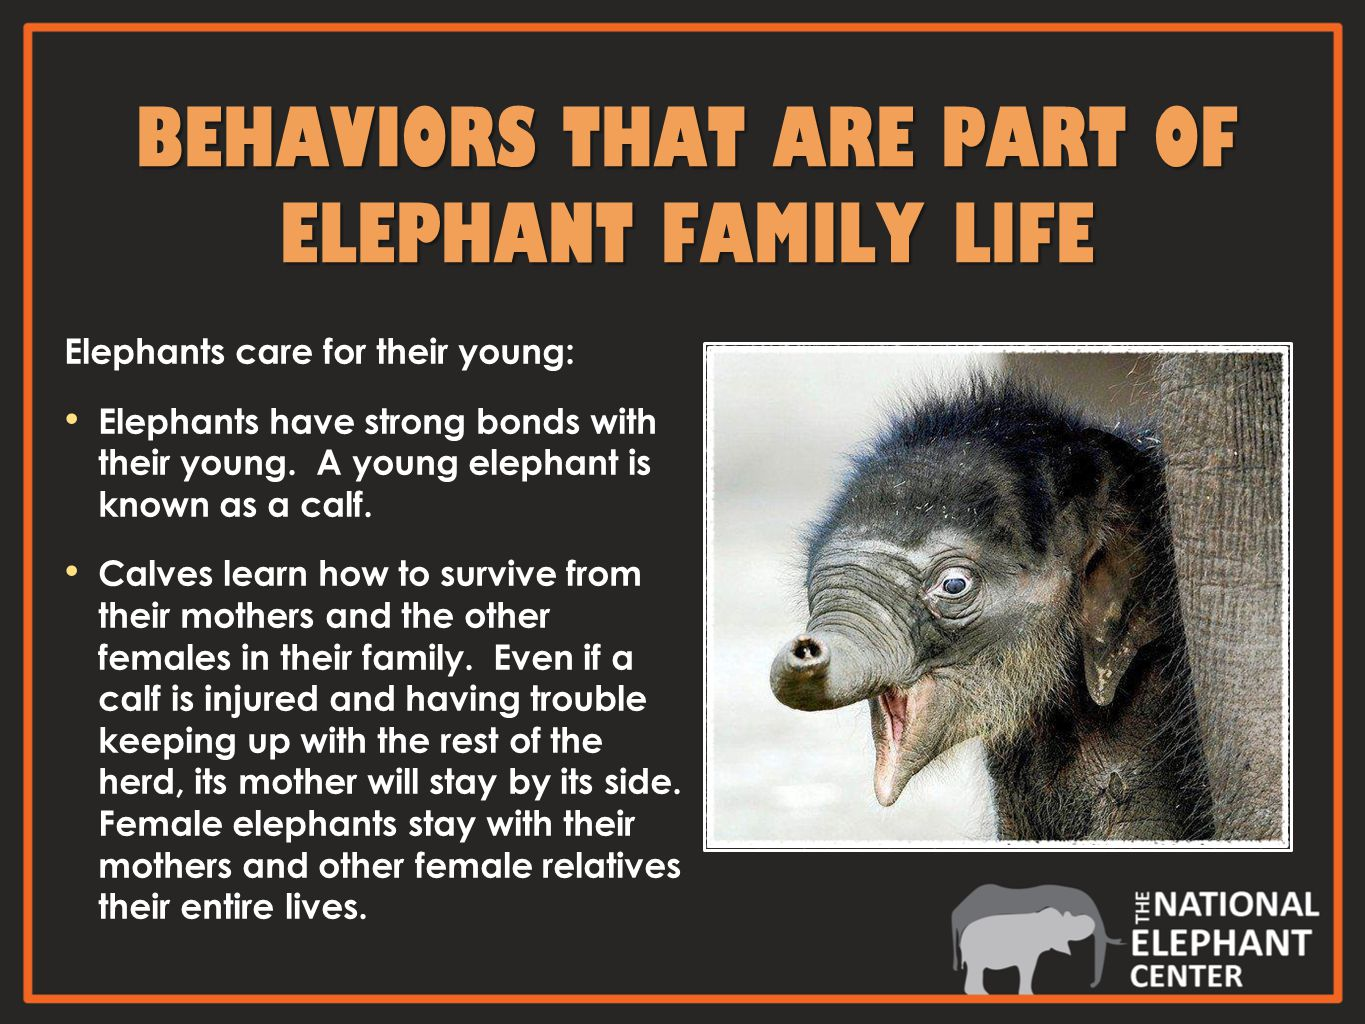 Elephants care for their young: Elephants have strong bonds with their young.